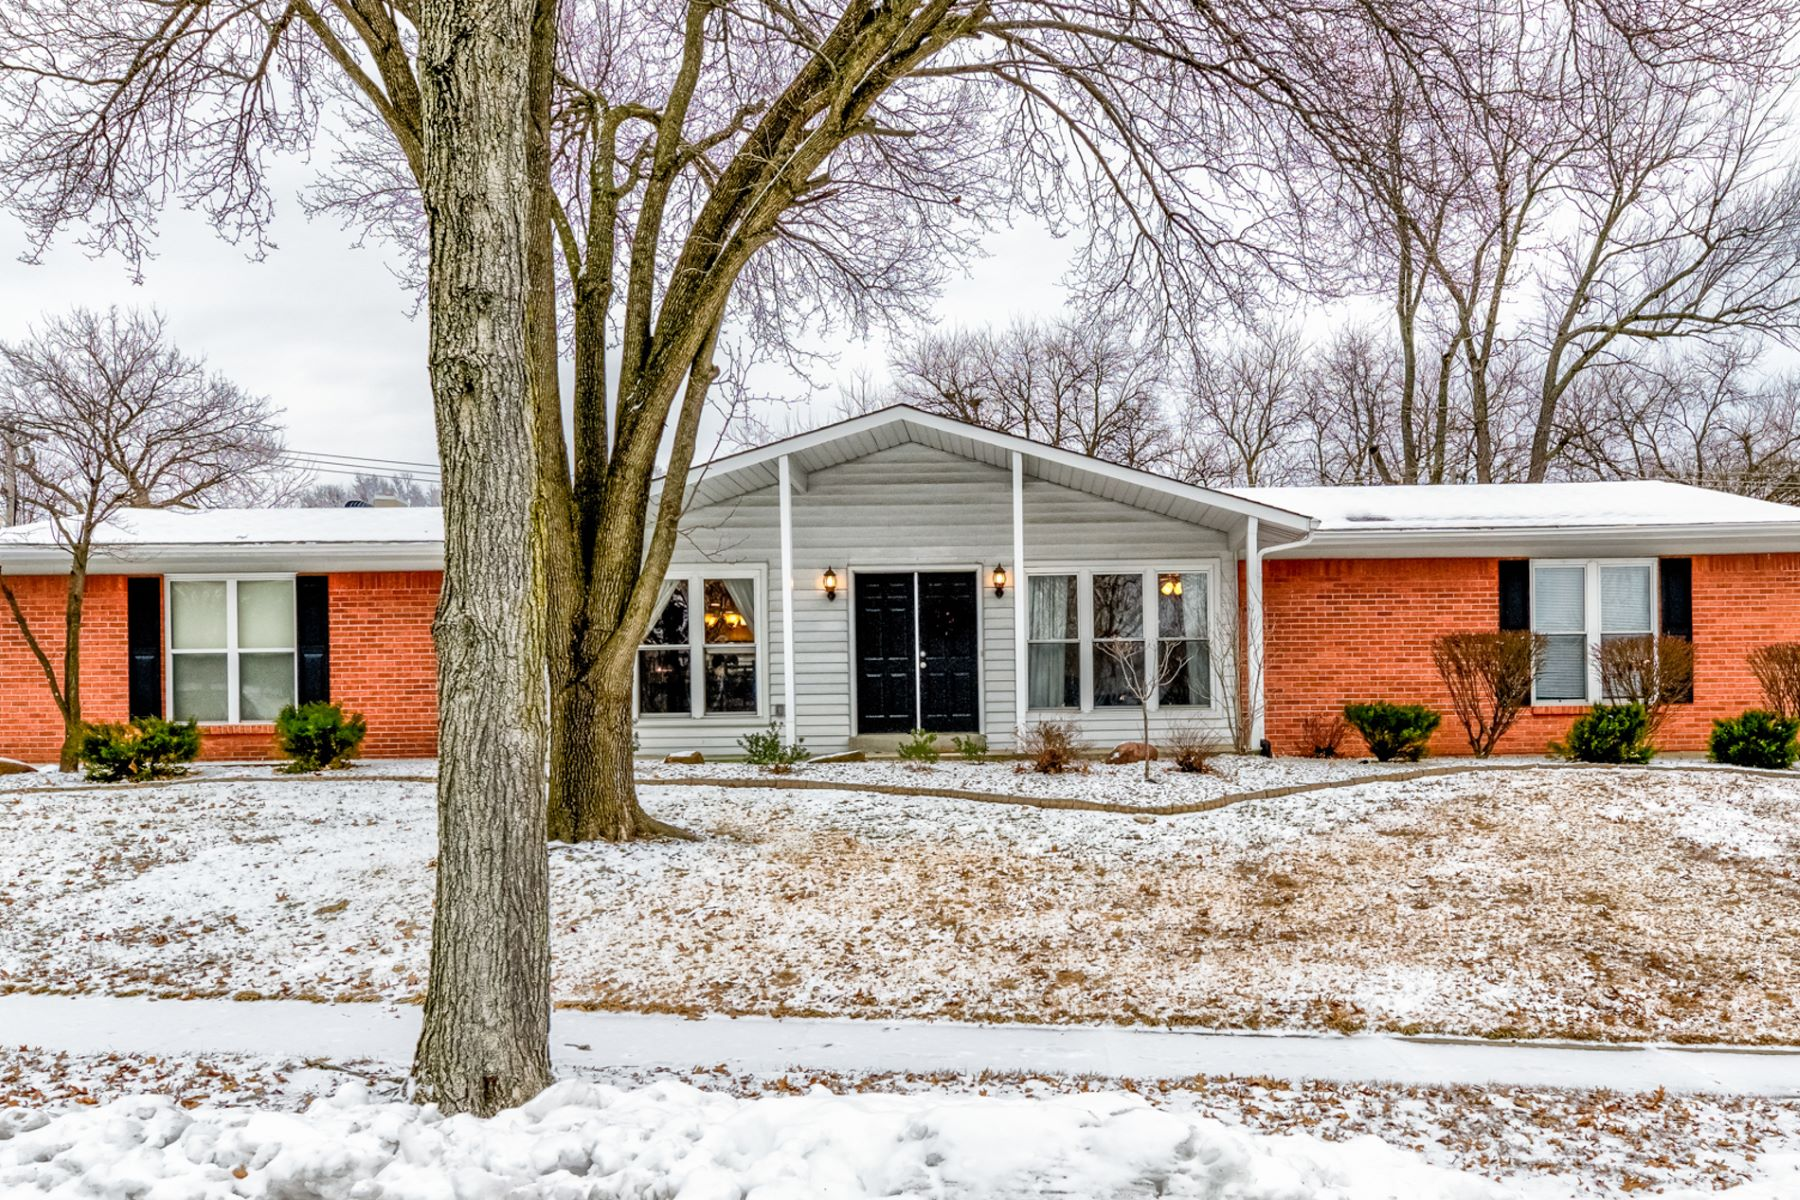 Single Family Home for Sale at Fernway Lane 972 Fernway Lane Creve Coeur, Missouri 63141 United States